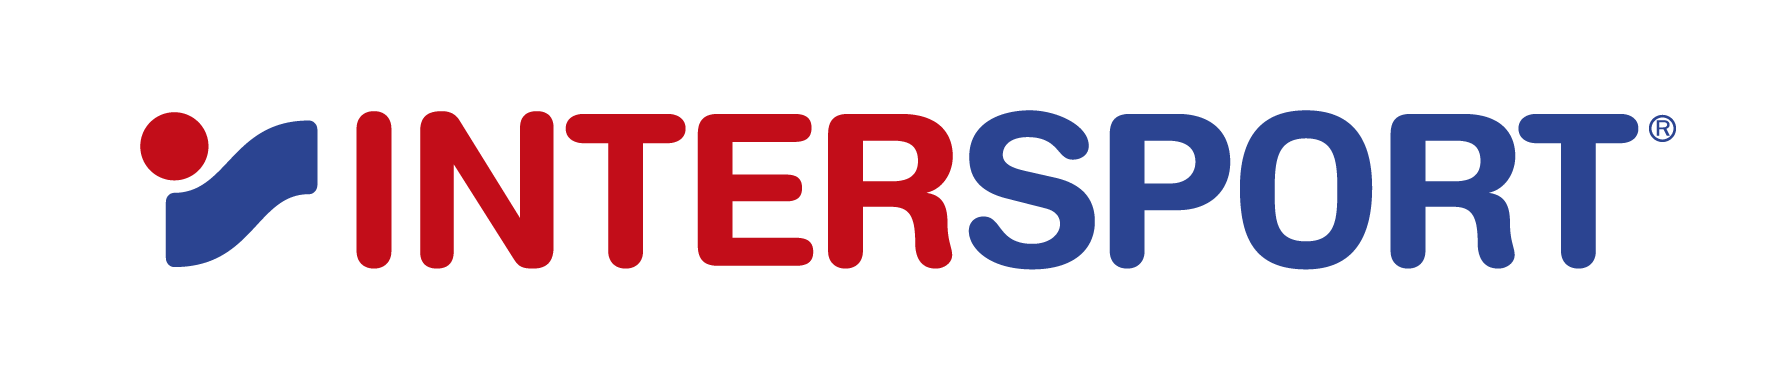 intersport_logo_cmyk_transp-01.png